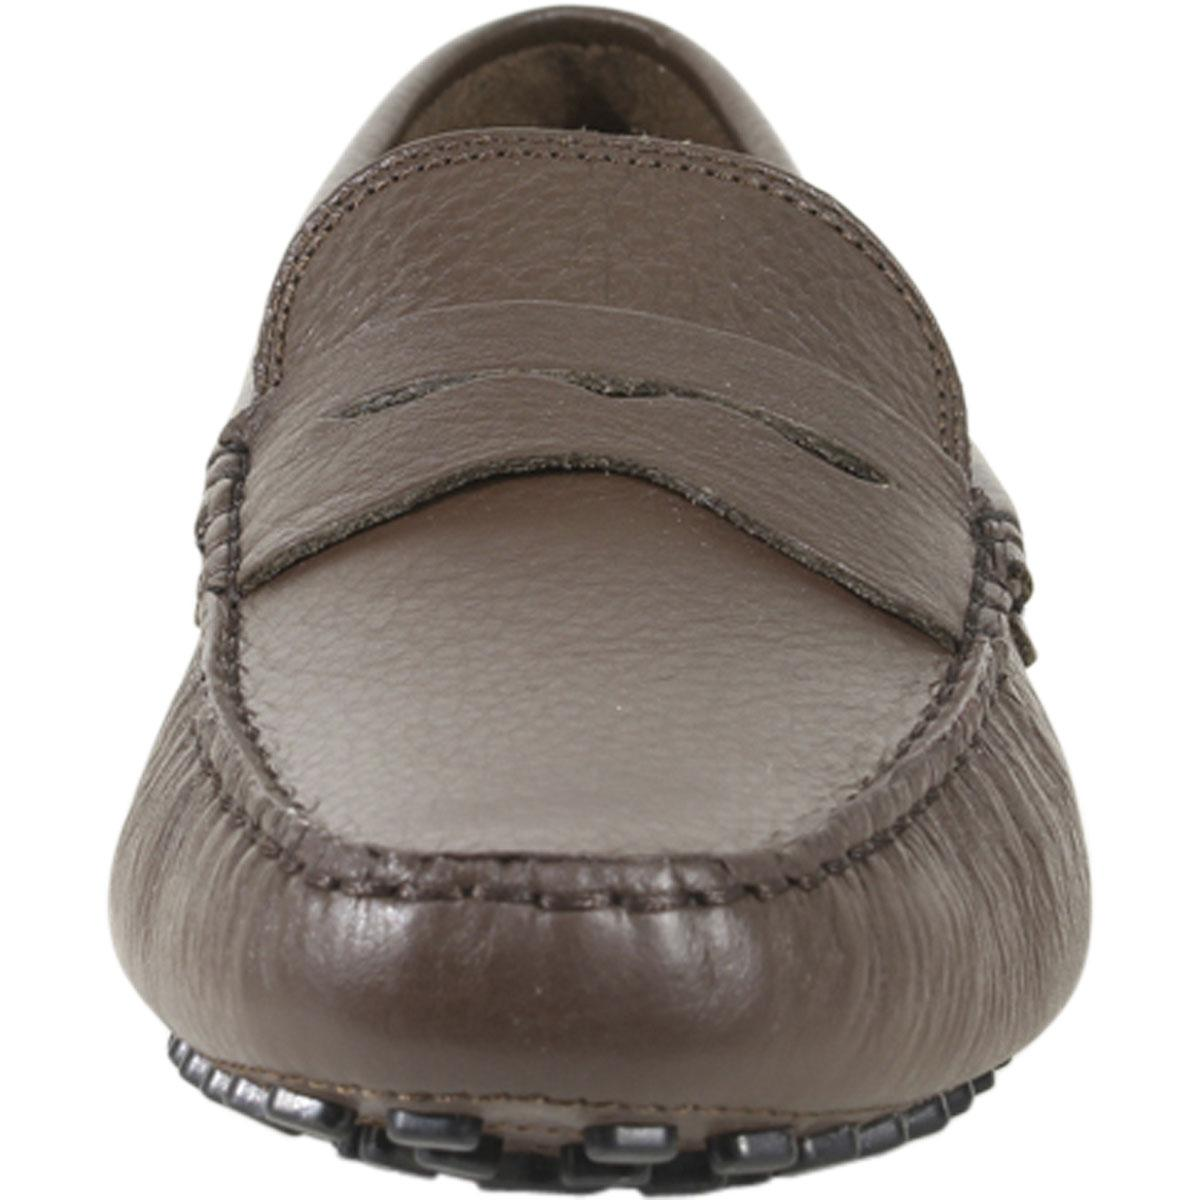 f3df351295b1da Lacoste Men s Concours-118 Driving Loafers Shoes by Lacoste